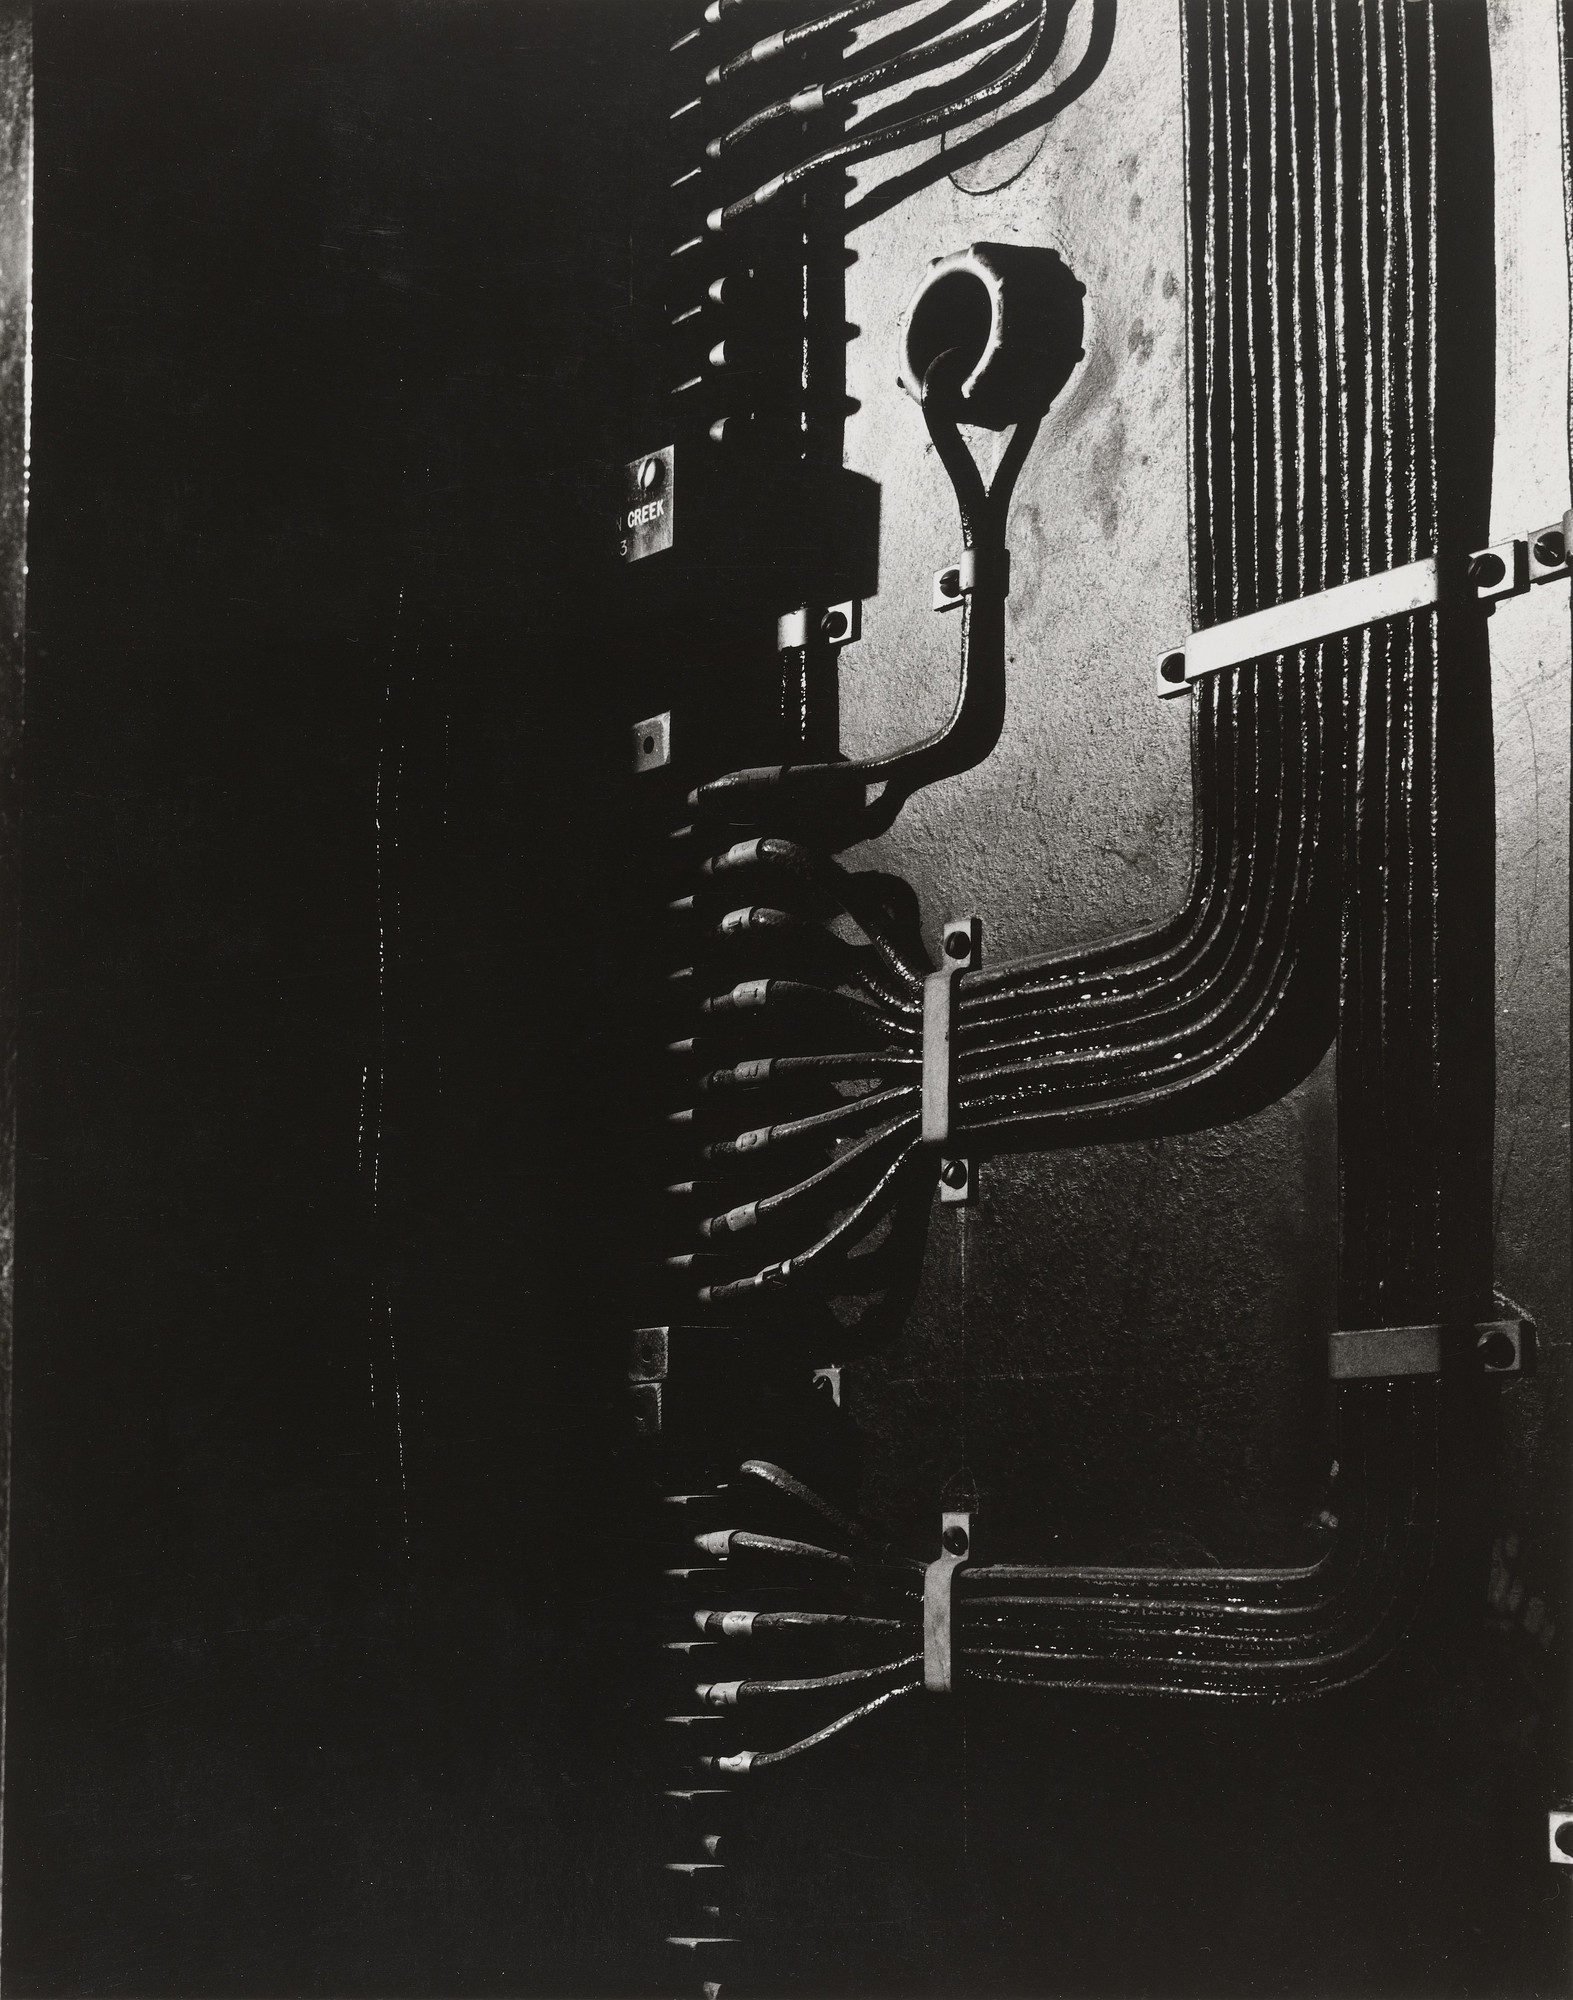 Minor White. Pacific Gas and Electric Company. 1947